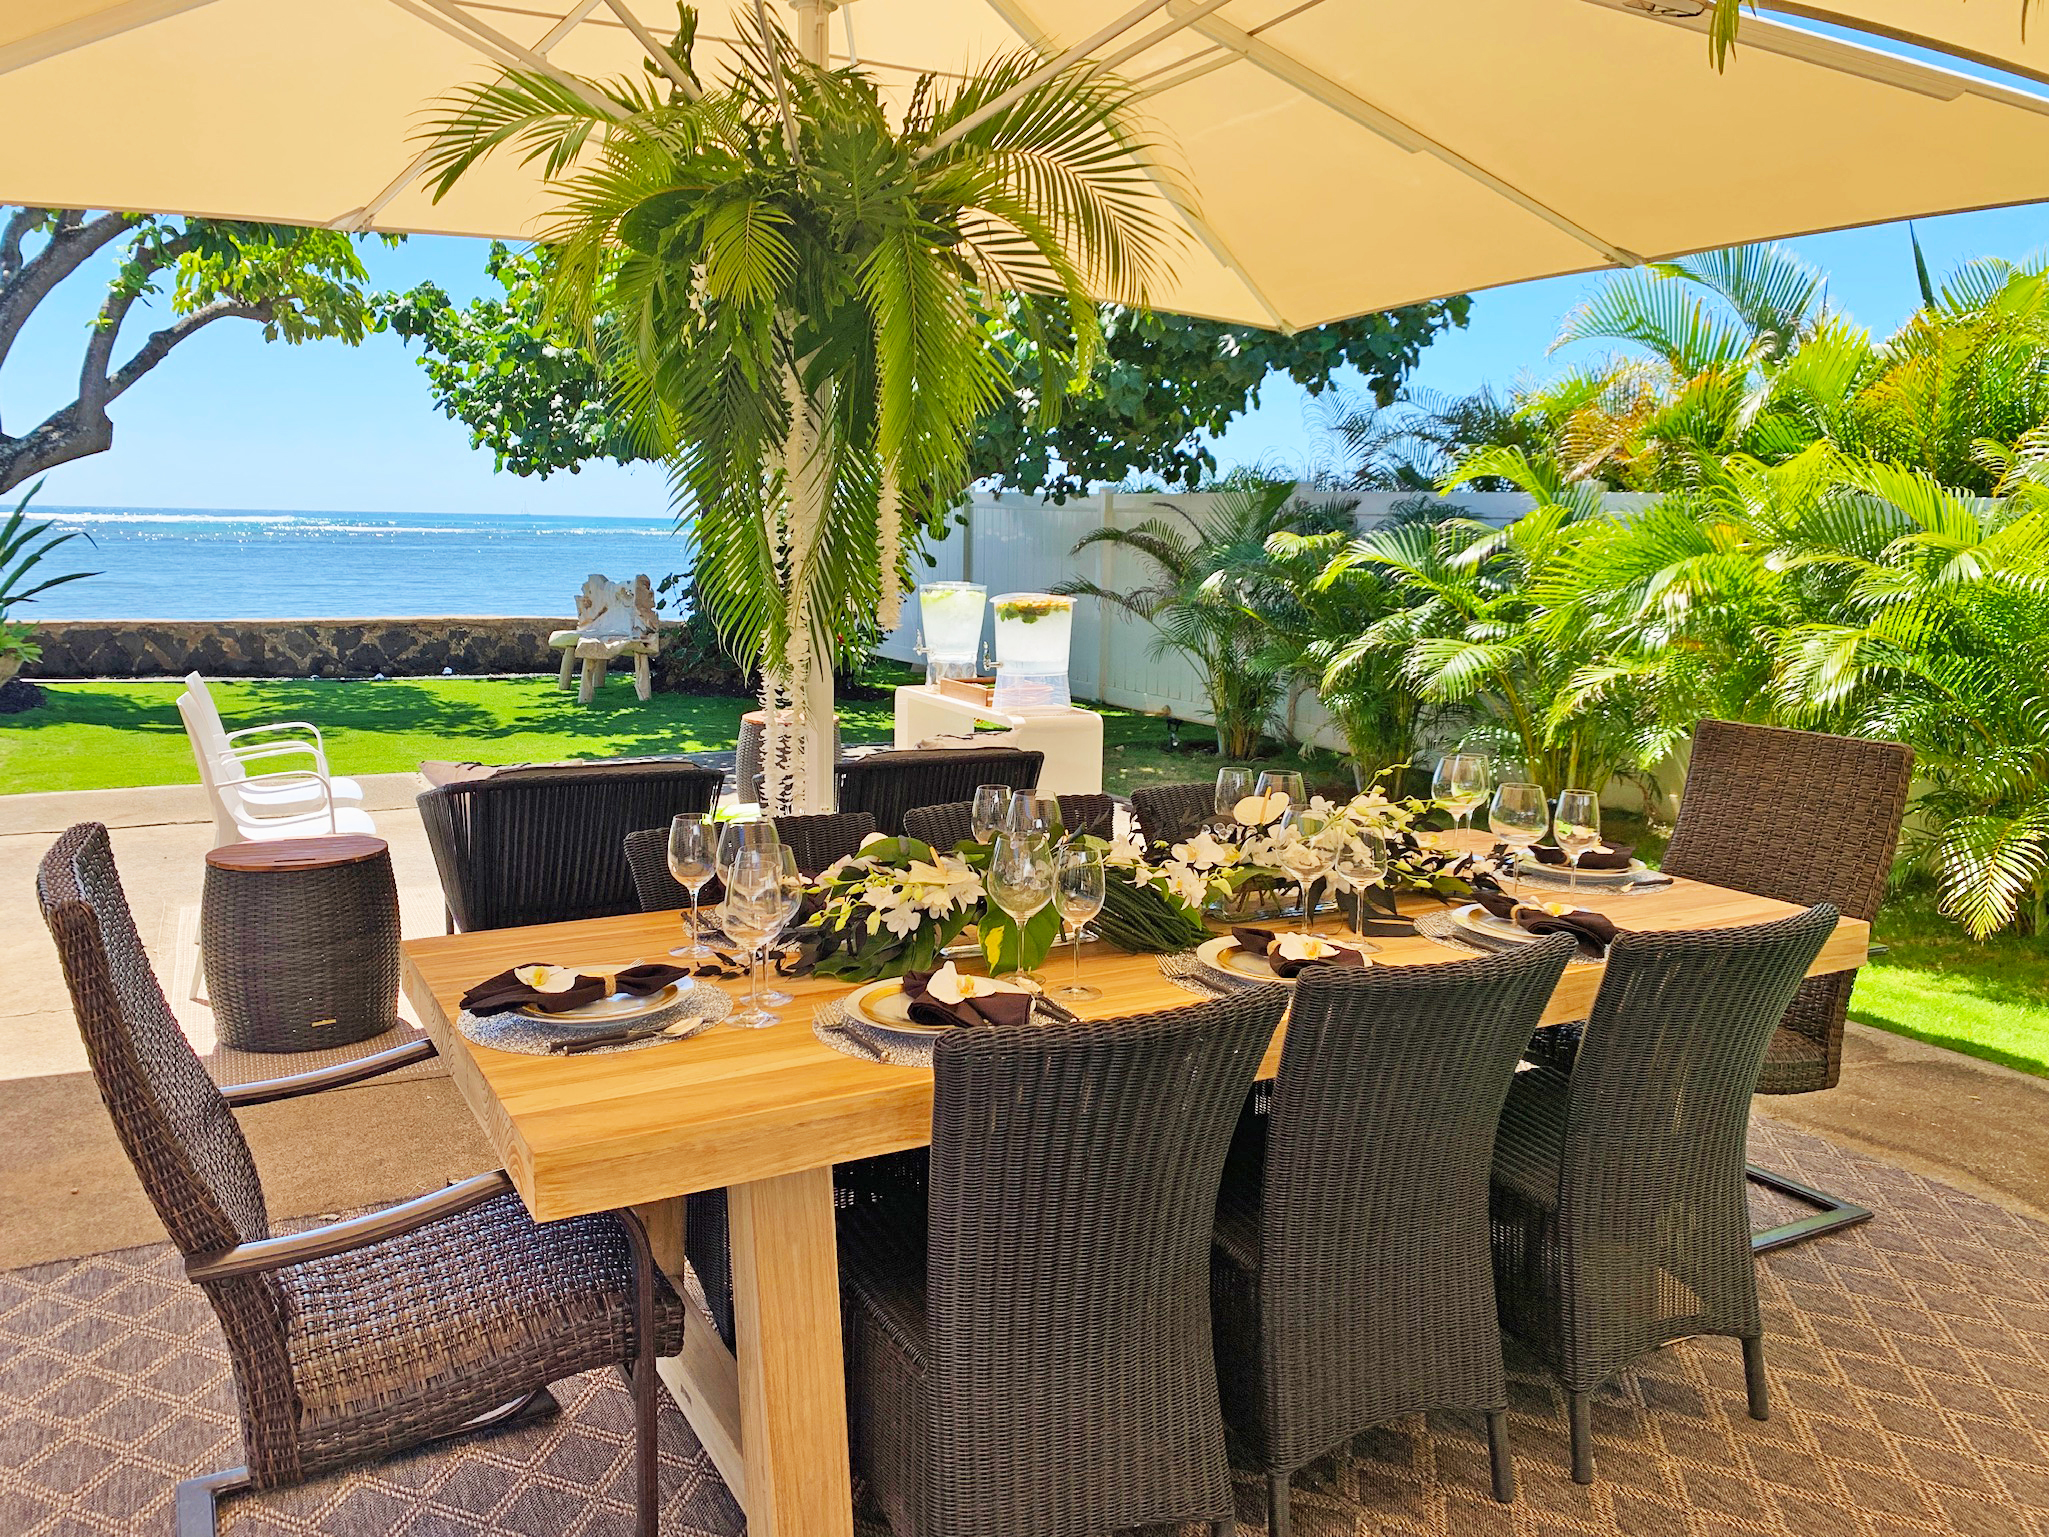 The Beach House - Destination Weddings - Hawaii